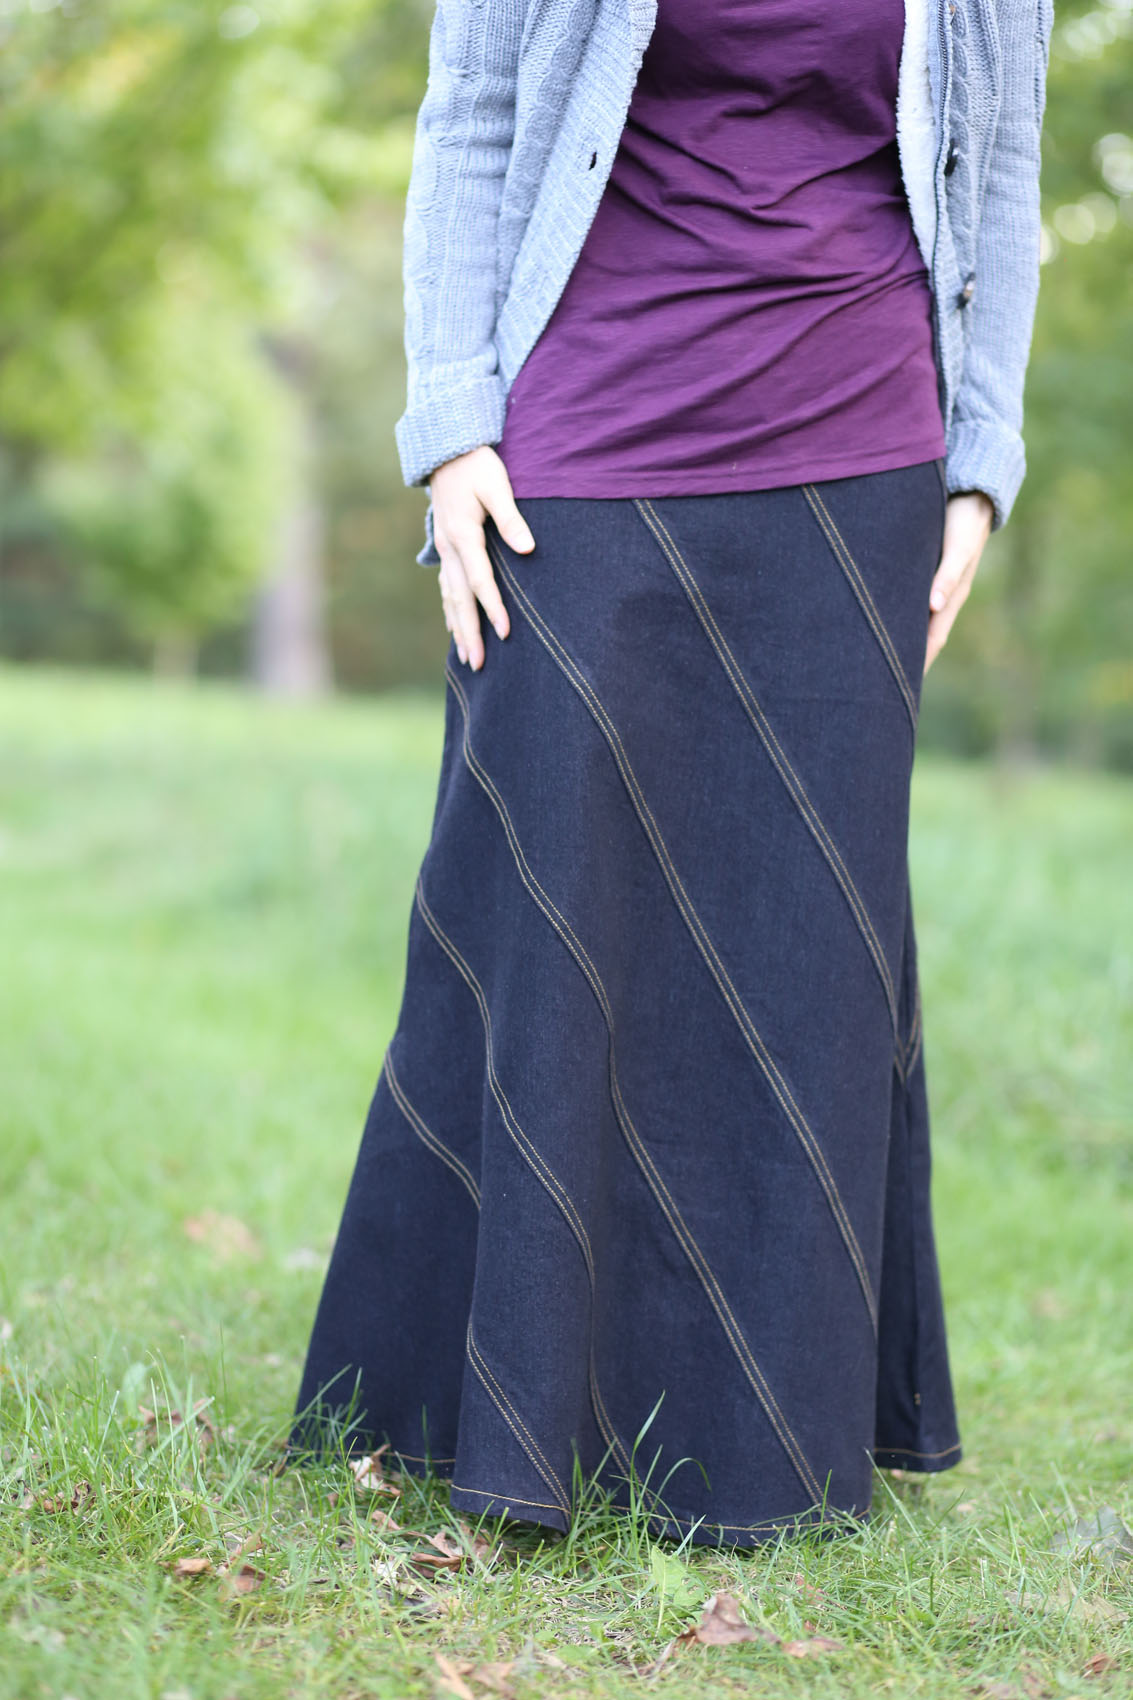 GAP Jeans Long Blue Denim MAXI Skirt Modest Hippie BOHO ... |Western Long Denim Skirts Modest